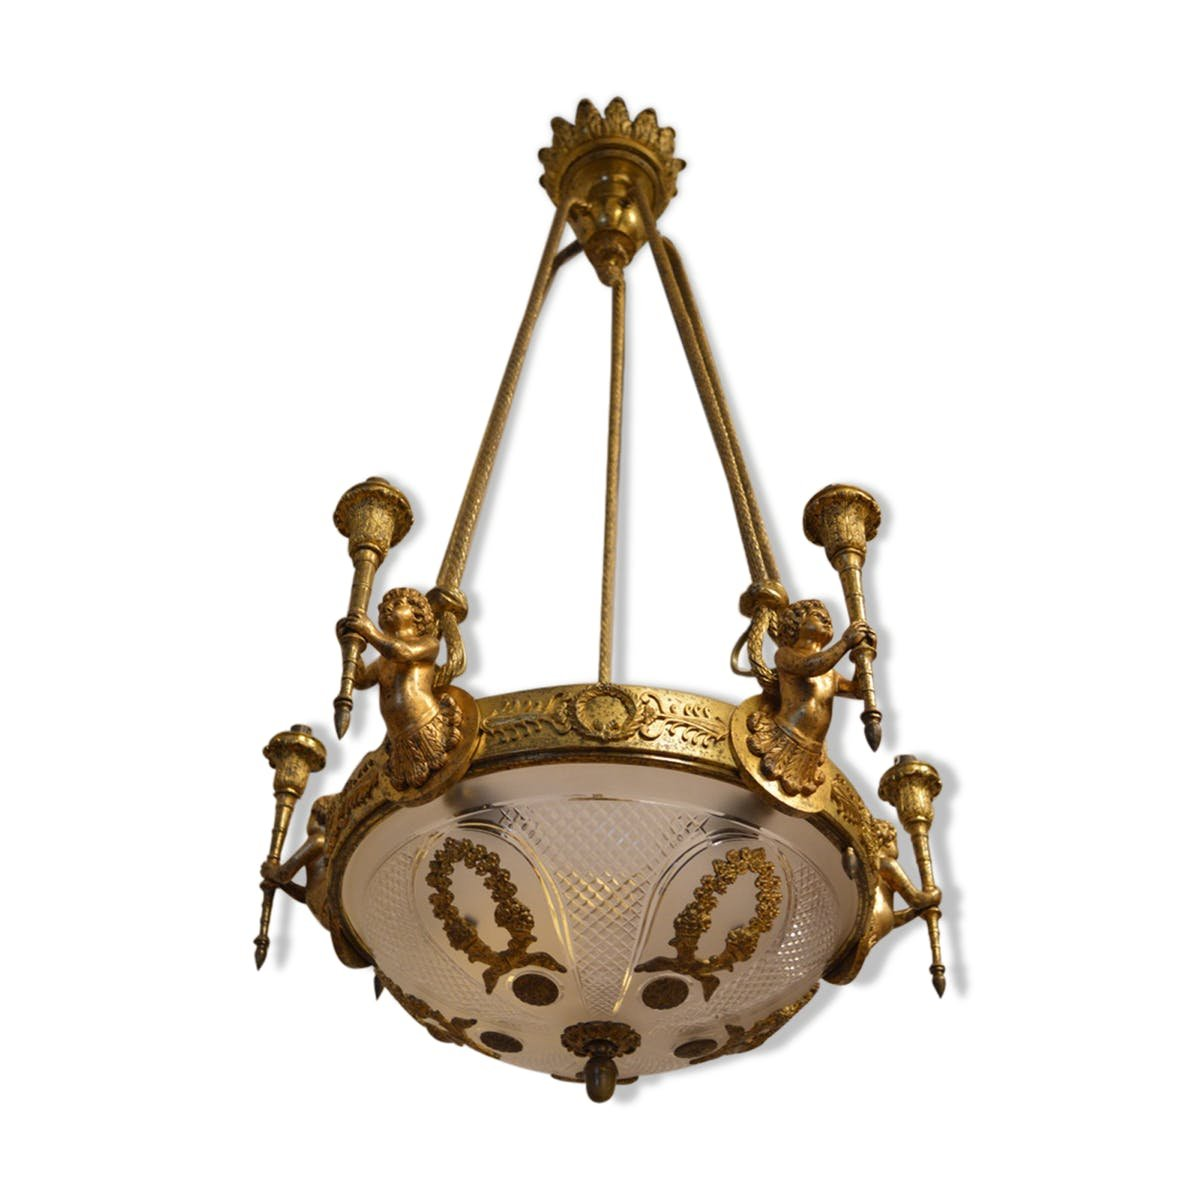 Antique louis xvi style chandelier with cherubs in gilt bronze for antique louis xvi style chandelier with cherubs in gilt bronze arubaitofo Gallery